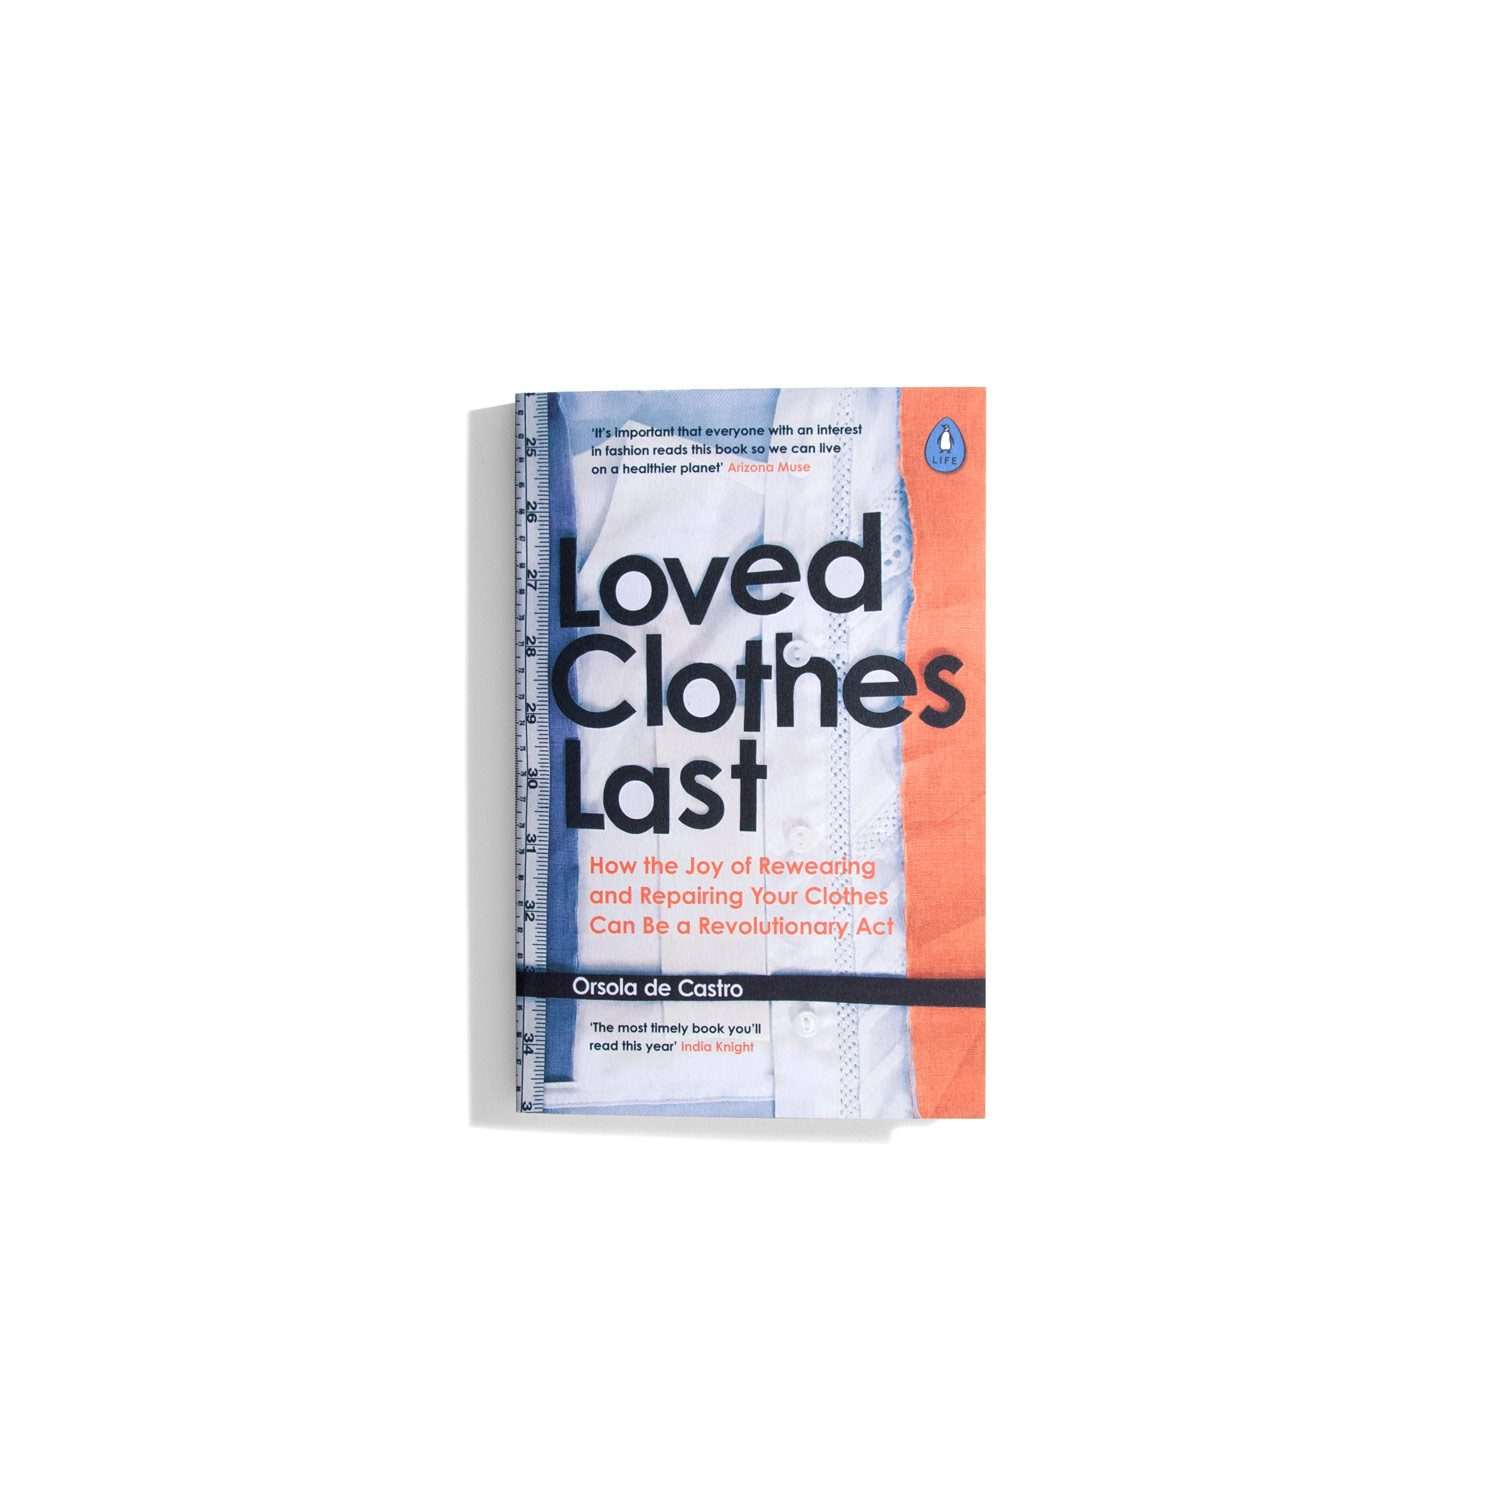 Loved Clothes Last - Orsola de Castro